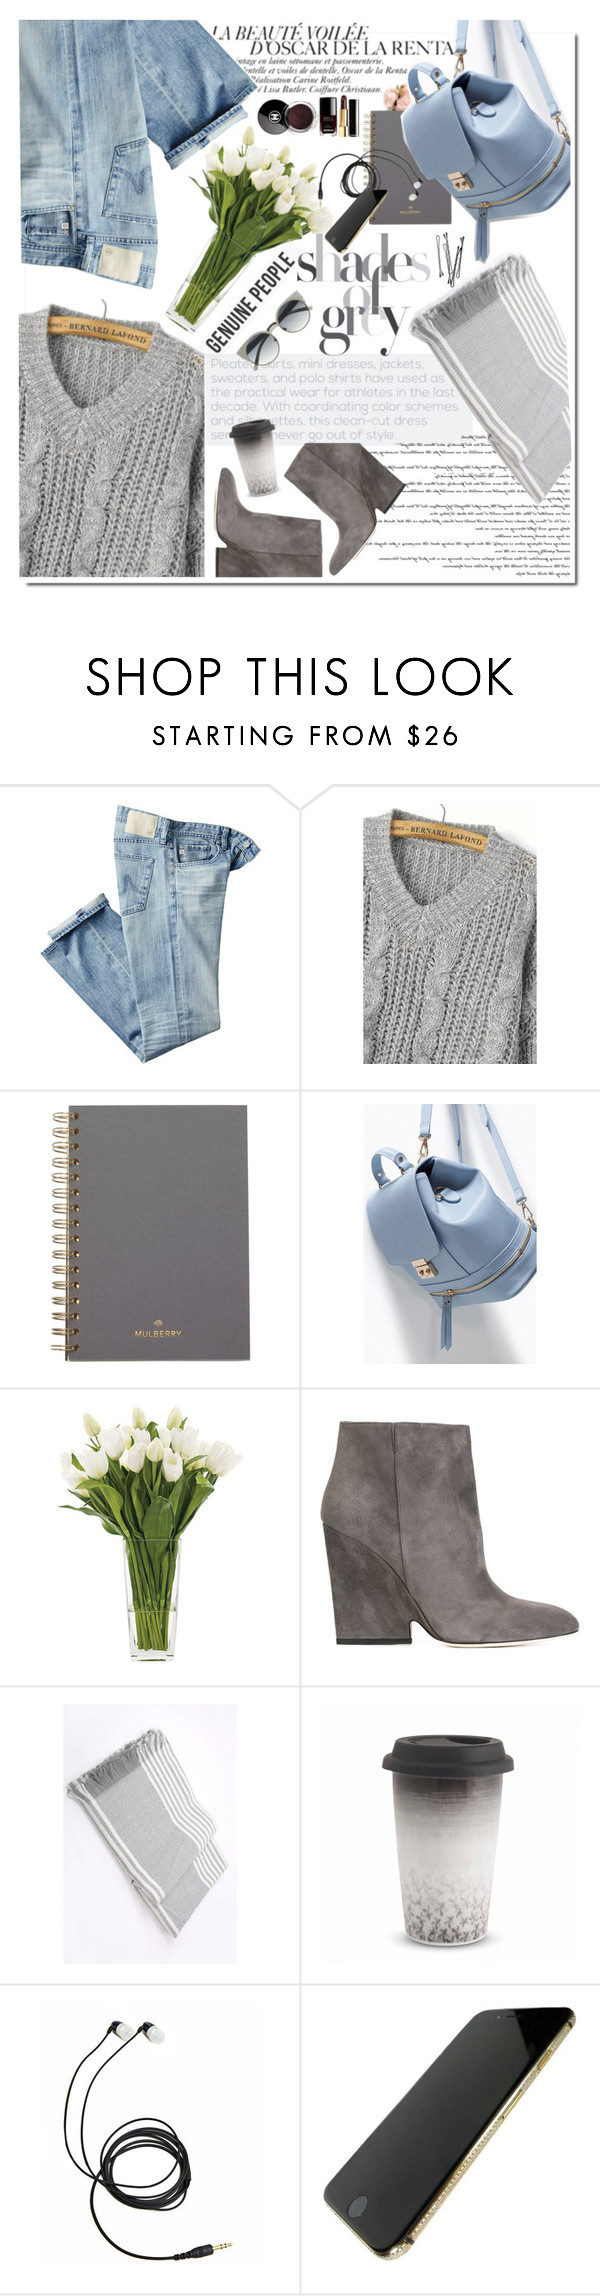 """""""Shades of grey"""" by sinsnottragedies ❤ liked on Polyvore featuring AG Adriano Goldschmied, Mulberry, NDI, Jimmy Choo, Wedgwood, Chanel, BOBBY, women's clothing, women's fashion and women"""